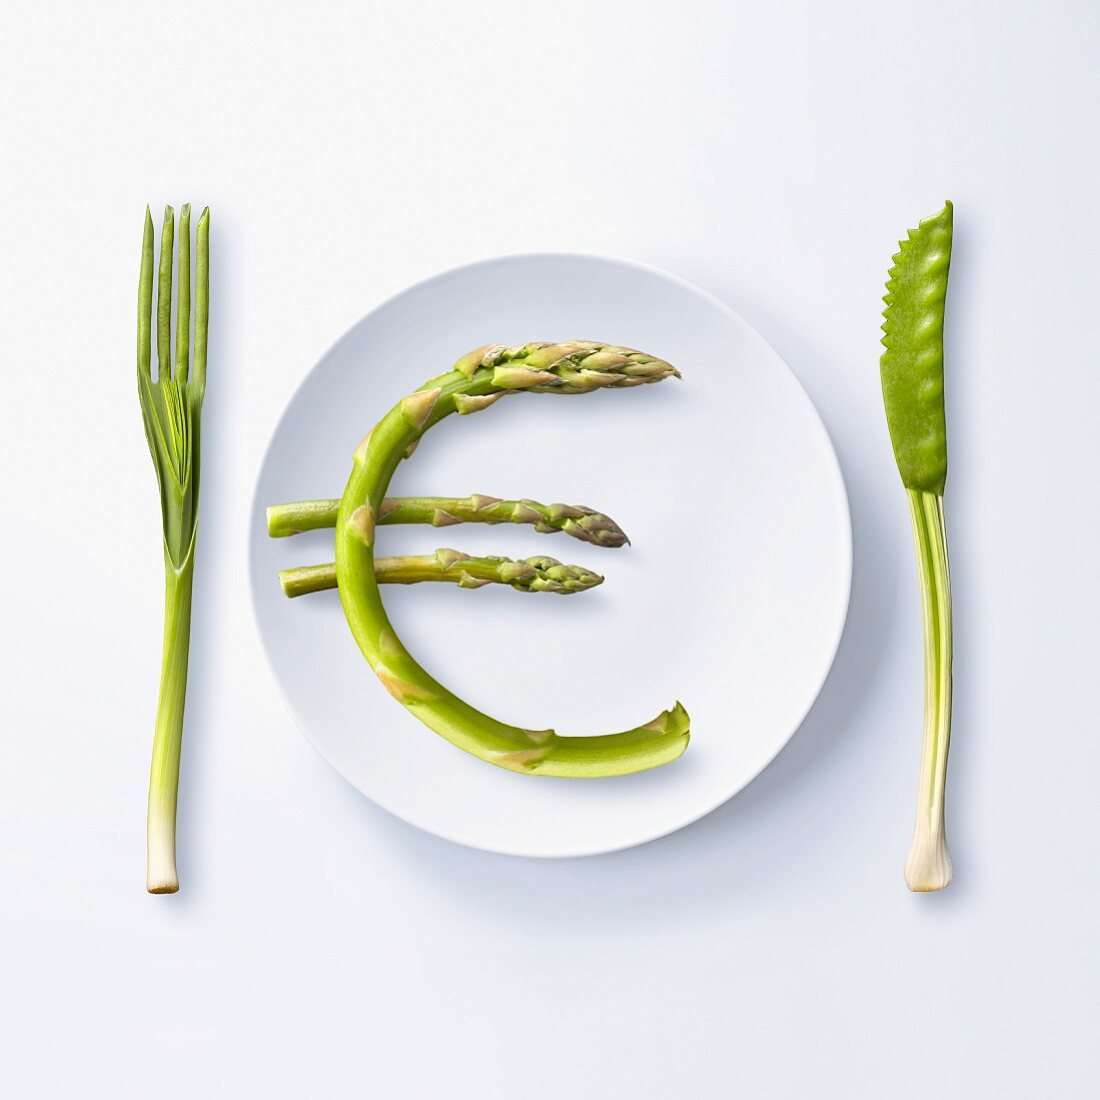 """""""""""""""?"""""""" written with green asparagus on a plate"""""""